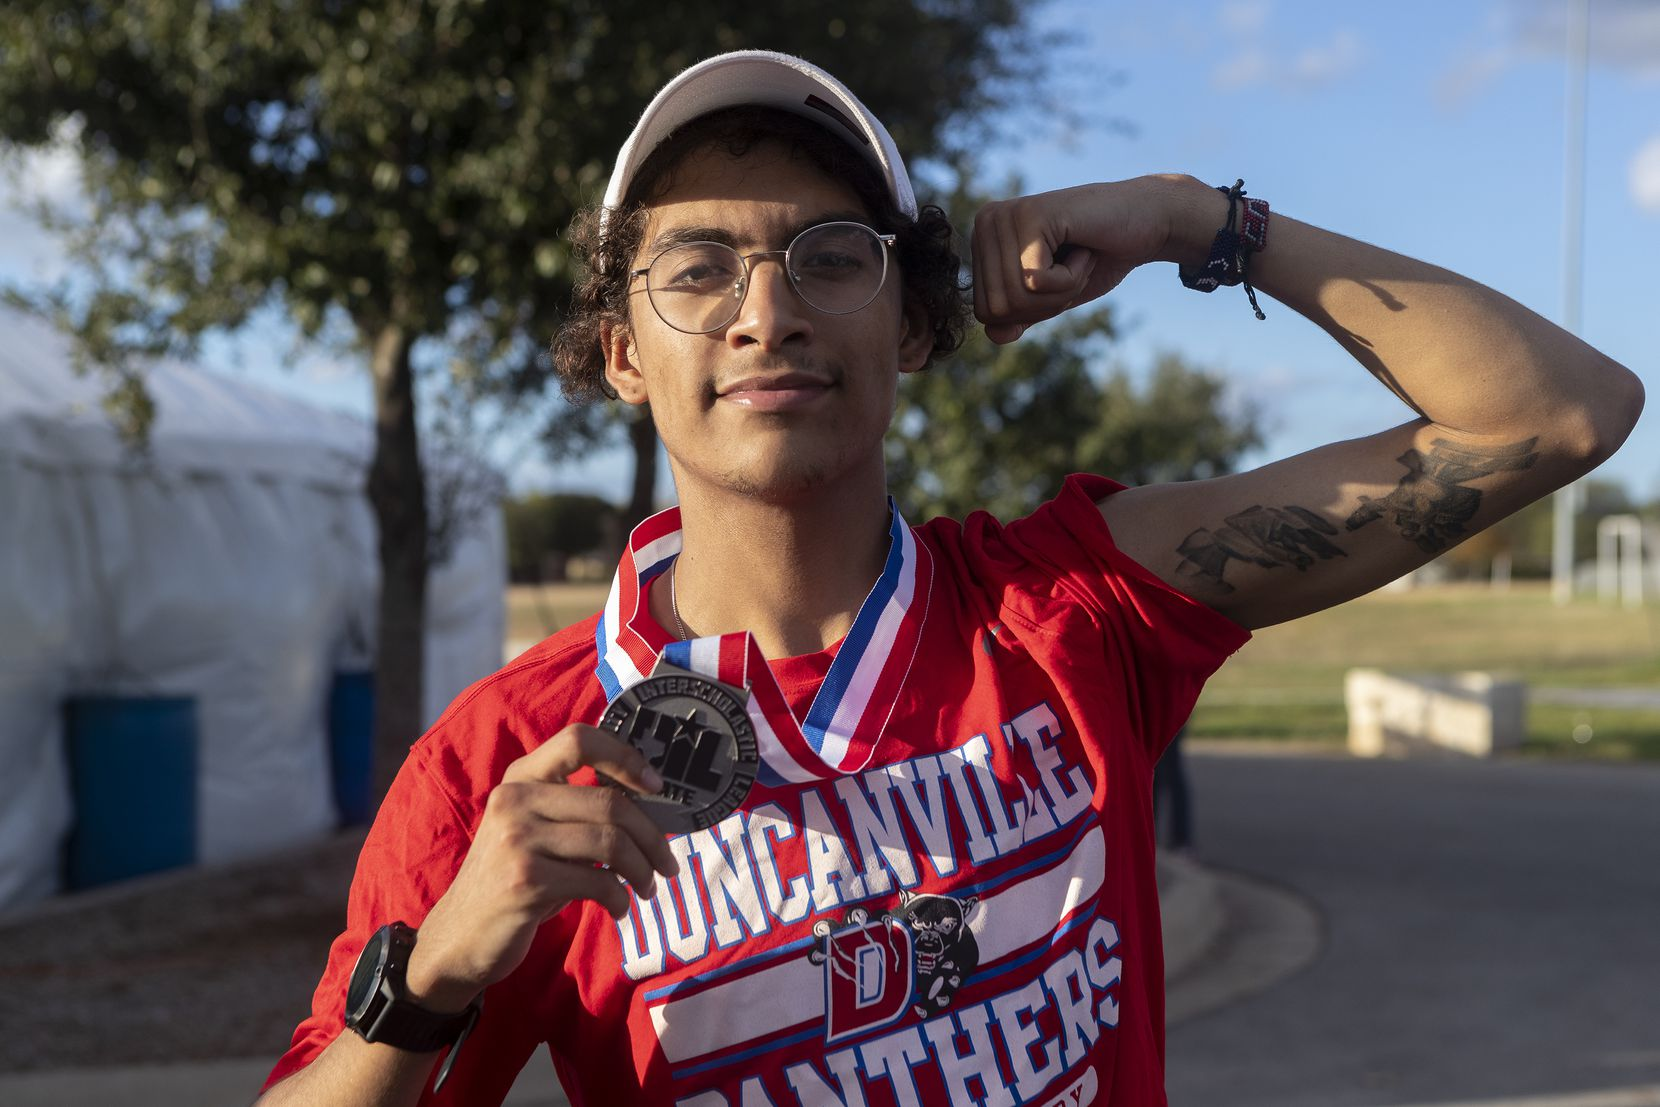 Duncanville's Martin David-Chavez poses for a photo as he celebrates his second place finish in the boys UIL Class 6A state cross country meet in Round Rock, Tuesday, Nov., 24, 2020 (Stephen Spillman/Special Contributor)